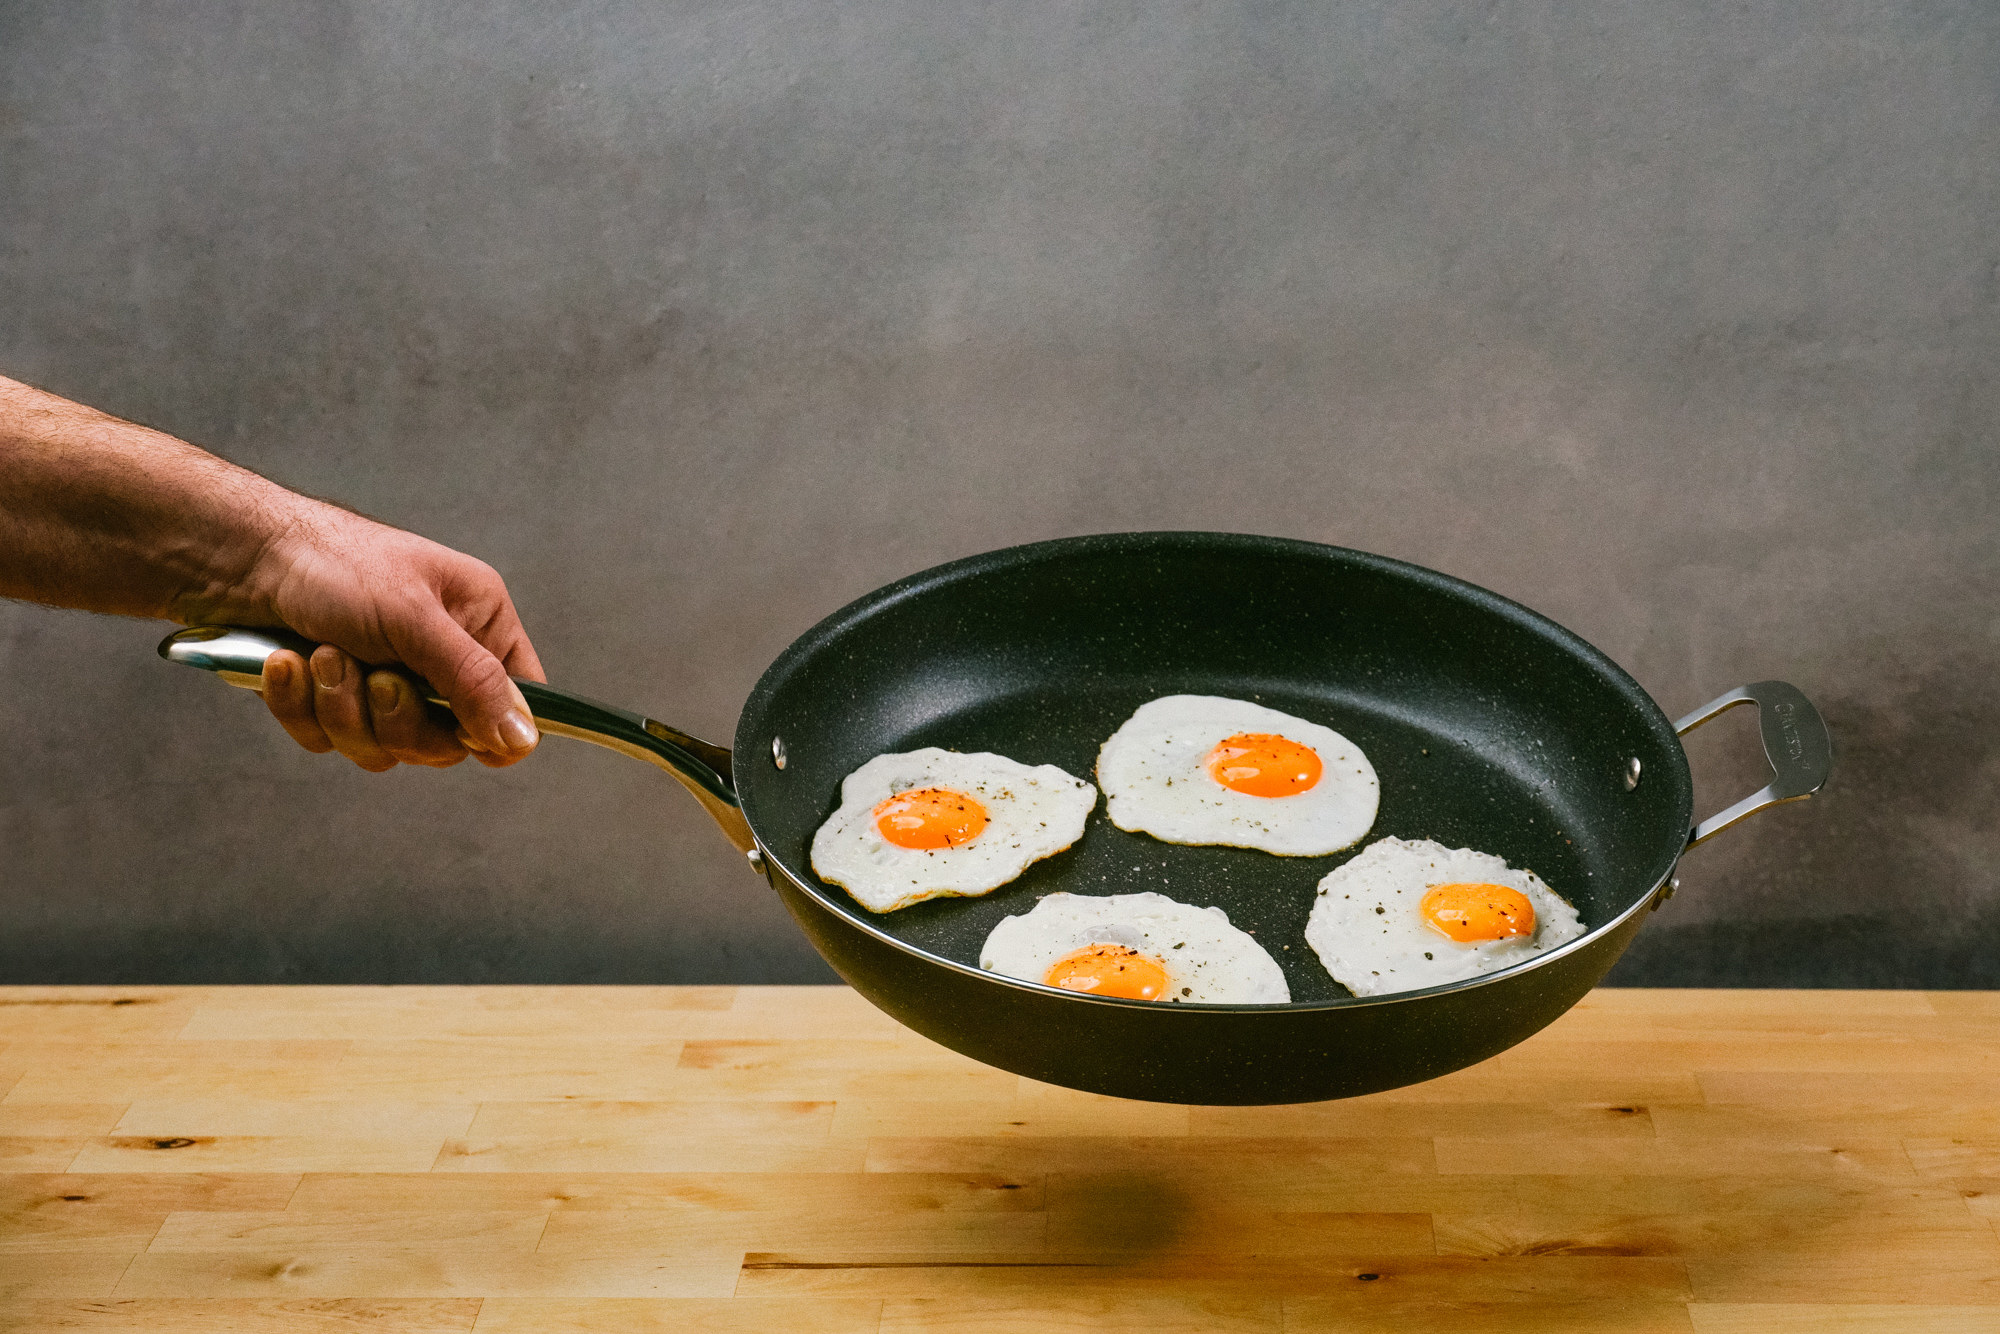 person holding a black nonstick skillet with four eggs in it